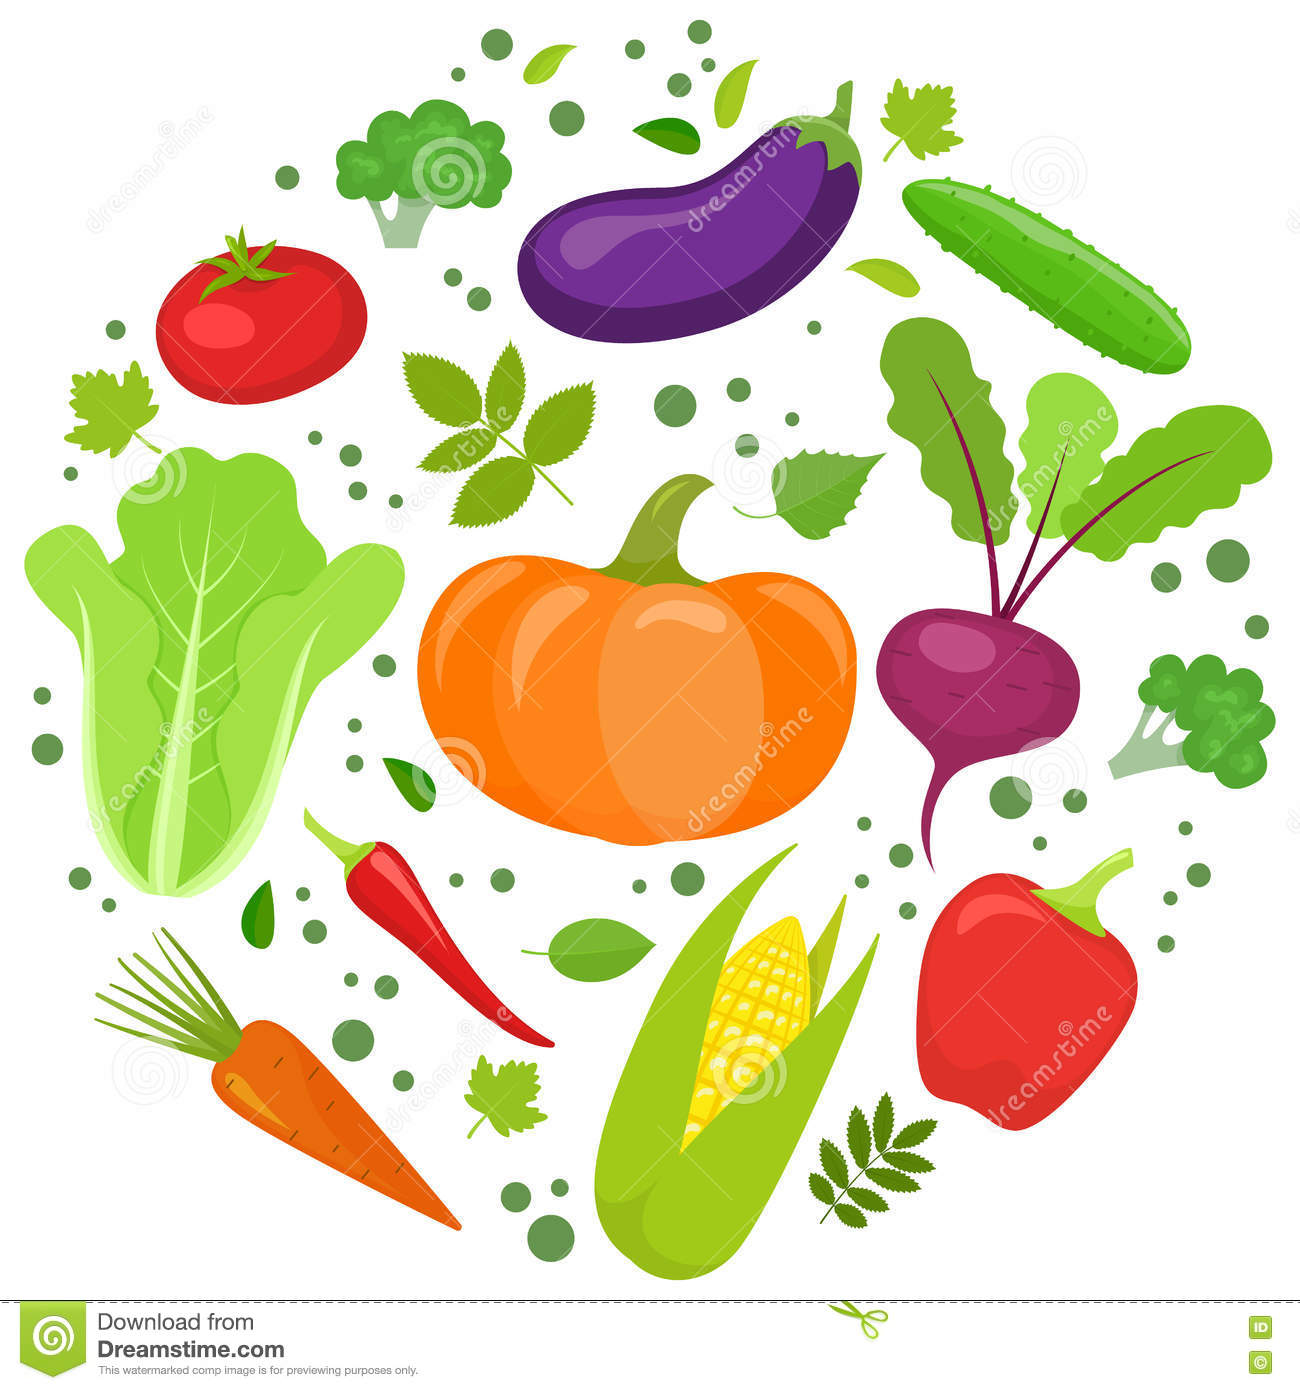 vegetable round template stock vector illustration of menu 75179139